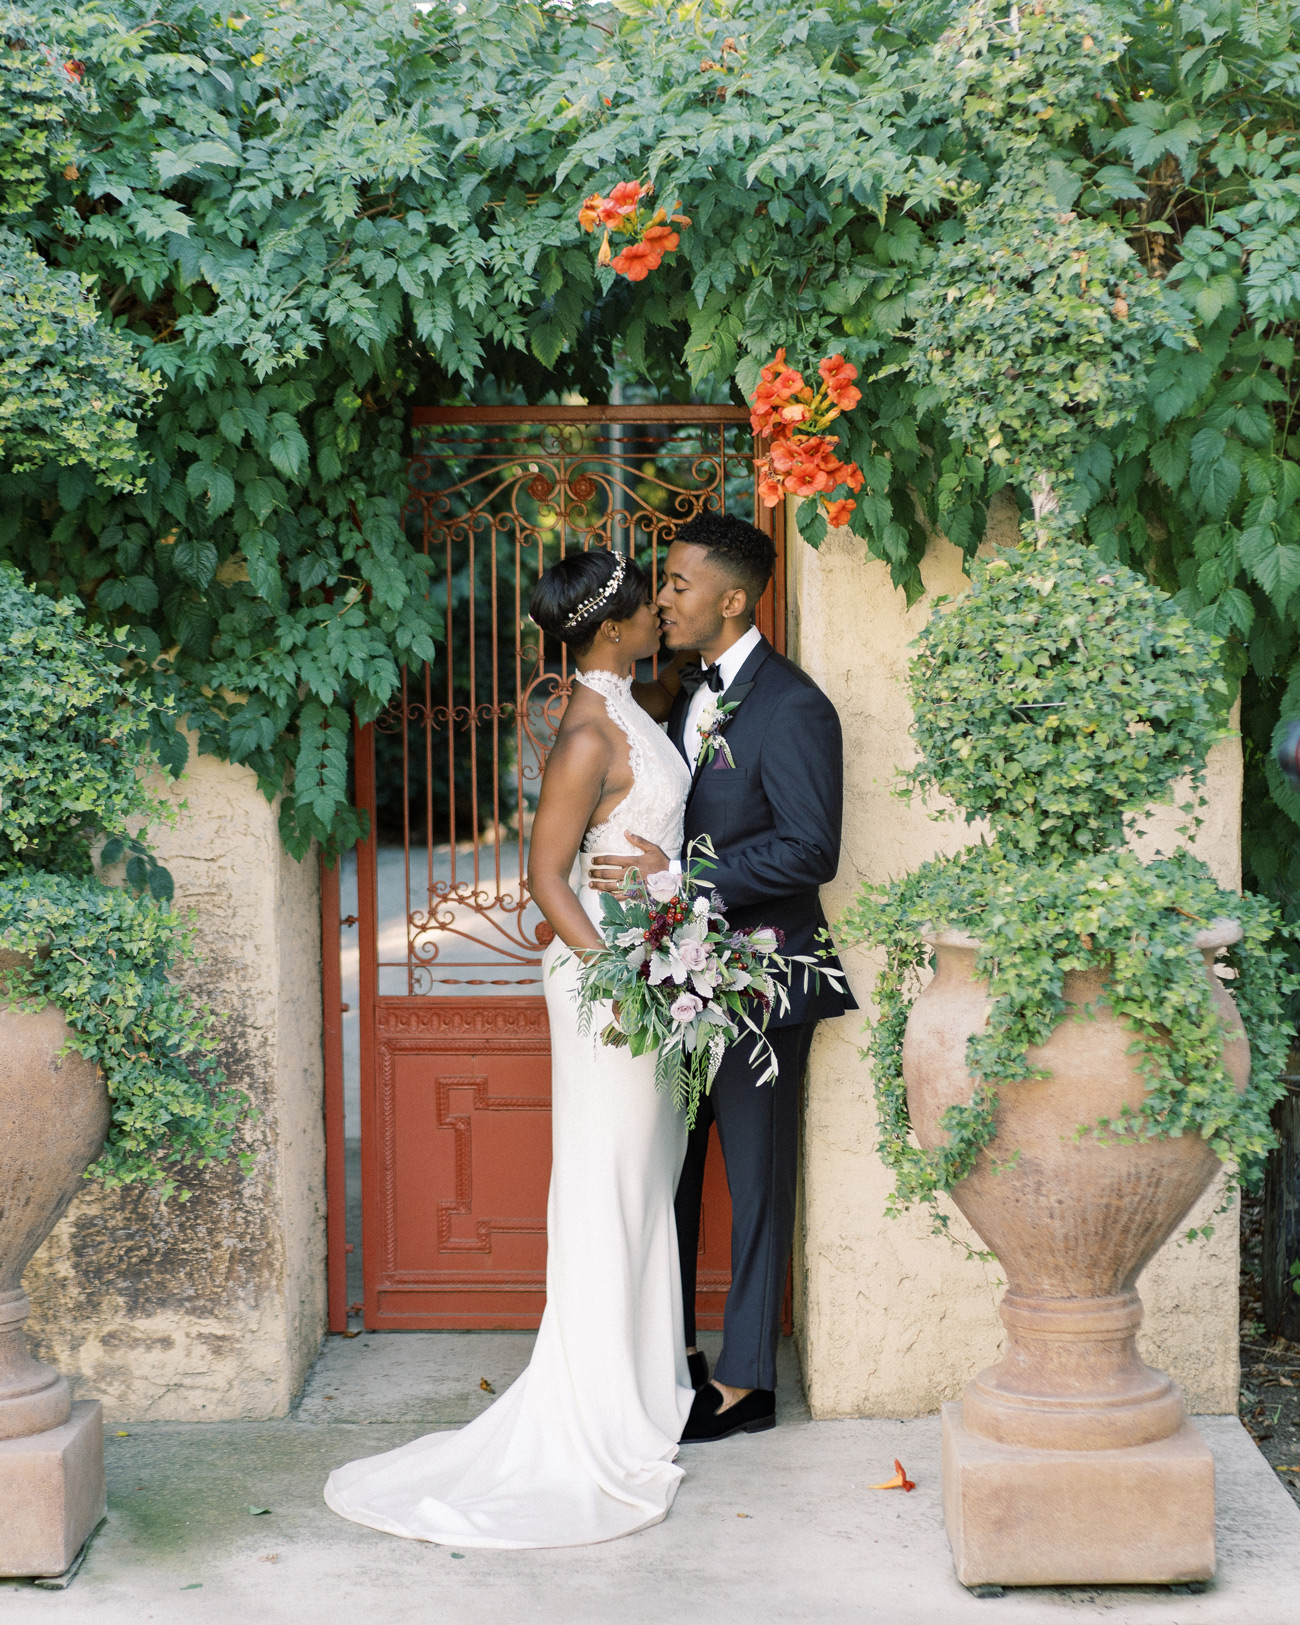 This California Garden Wedding Was All About the Jazz